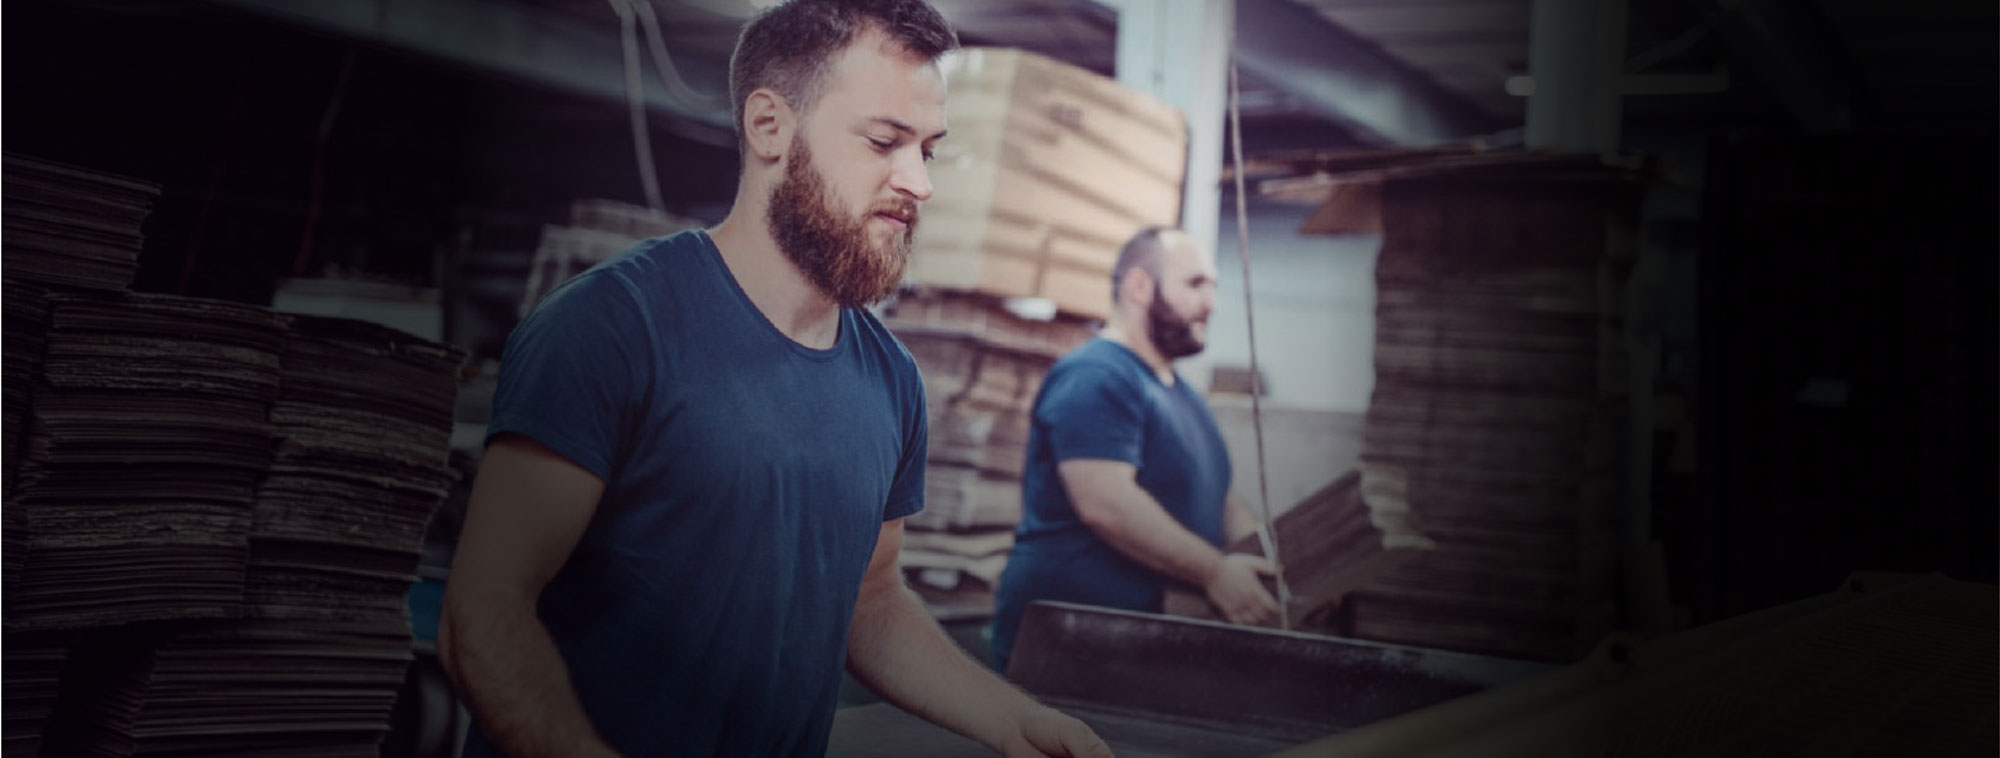 Image of two bearded frontline workers operating in a factory.